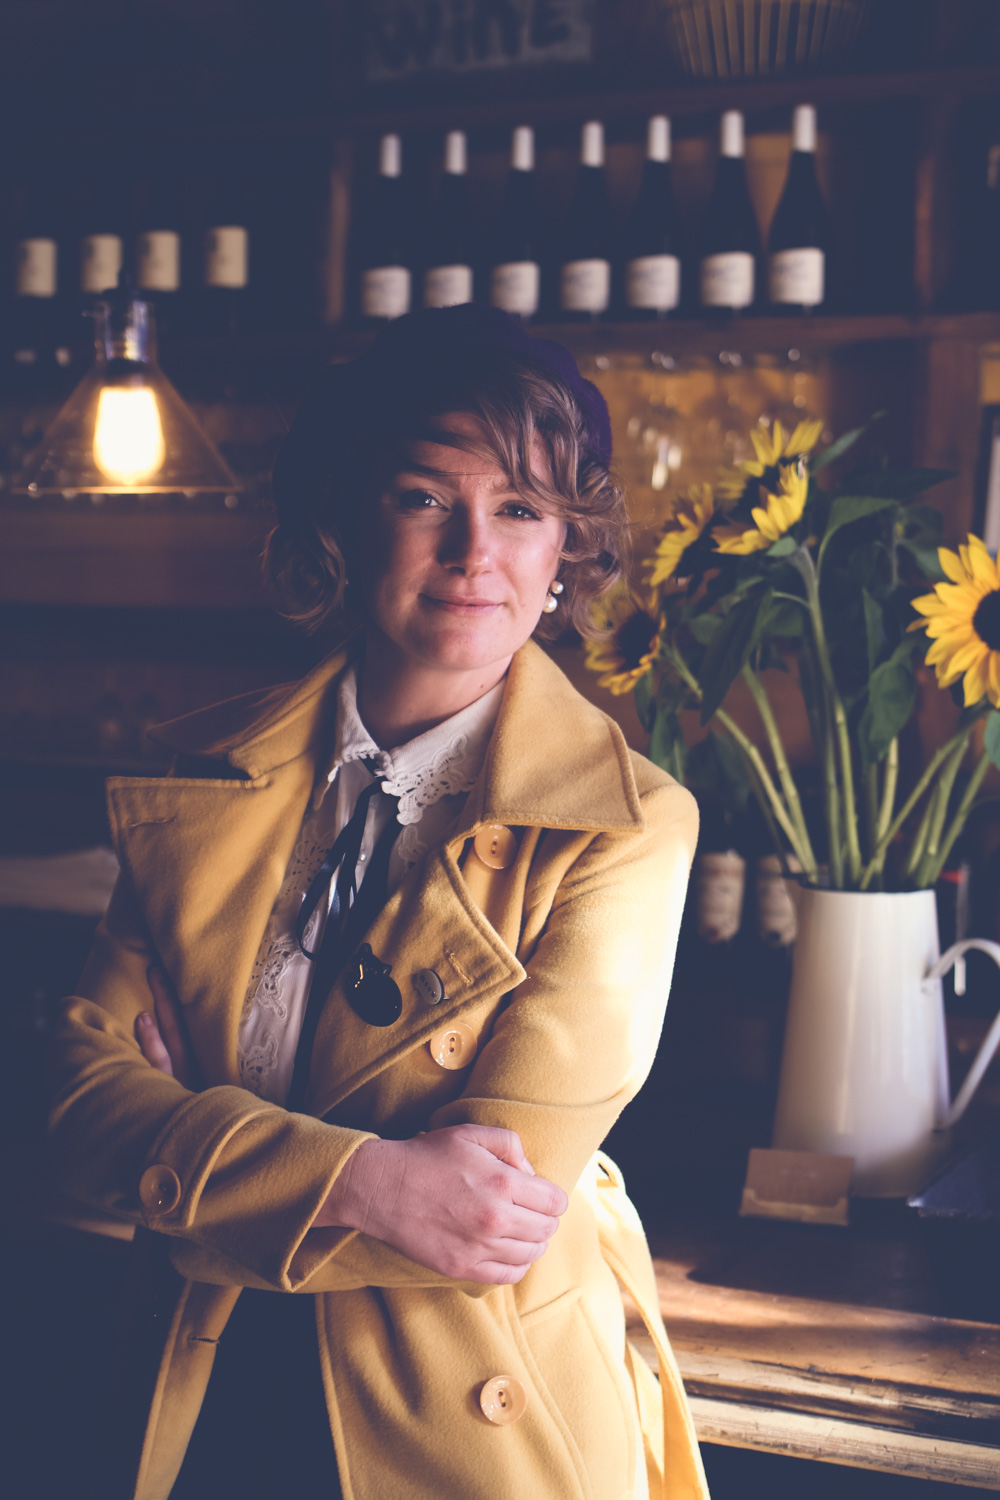 @findingfemme visits Cliffy's in Daylesford in mustard and plum outfit